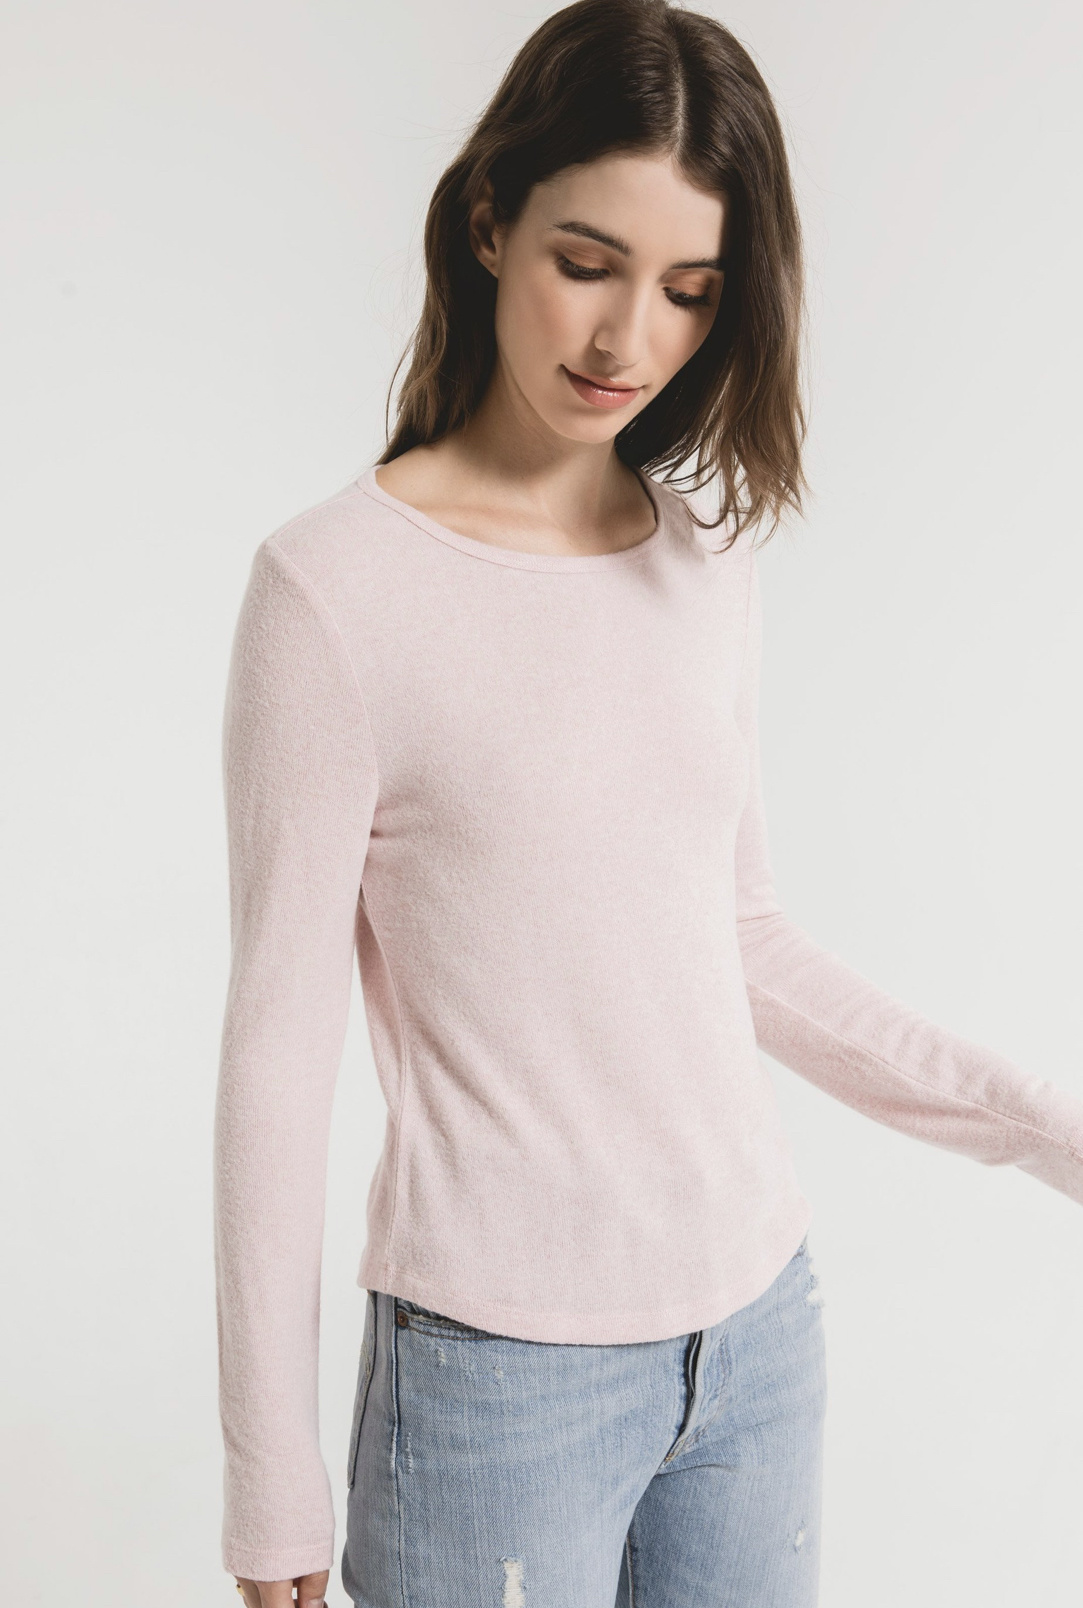 Z Supply Marled Fitted Top - Pale Blush